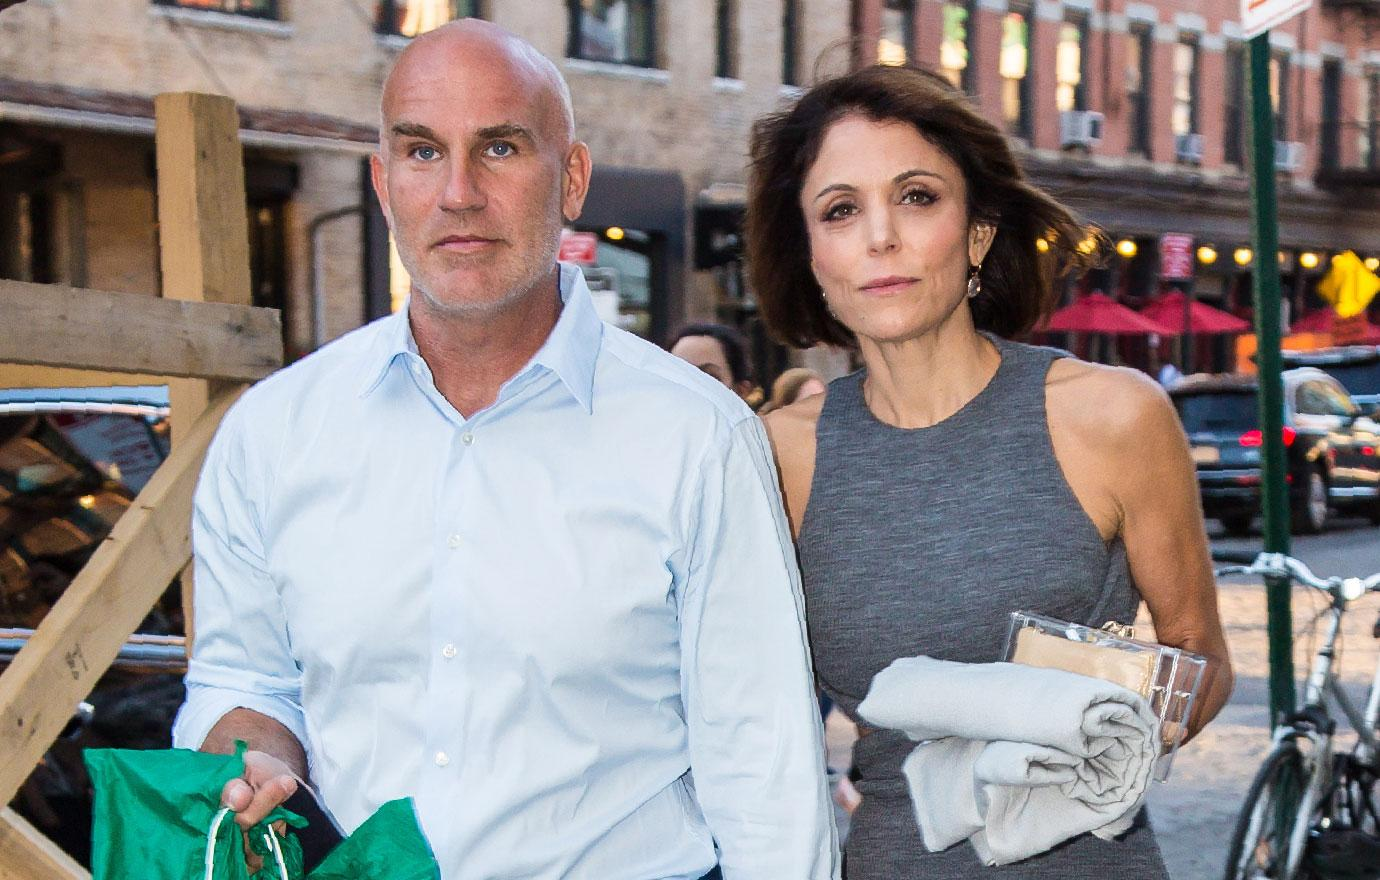 Bethenny Frankel's Relationship With Dennis Shields Was Unstable